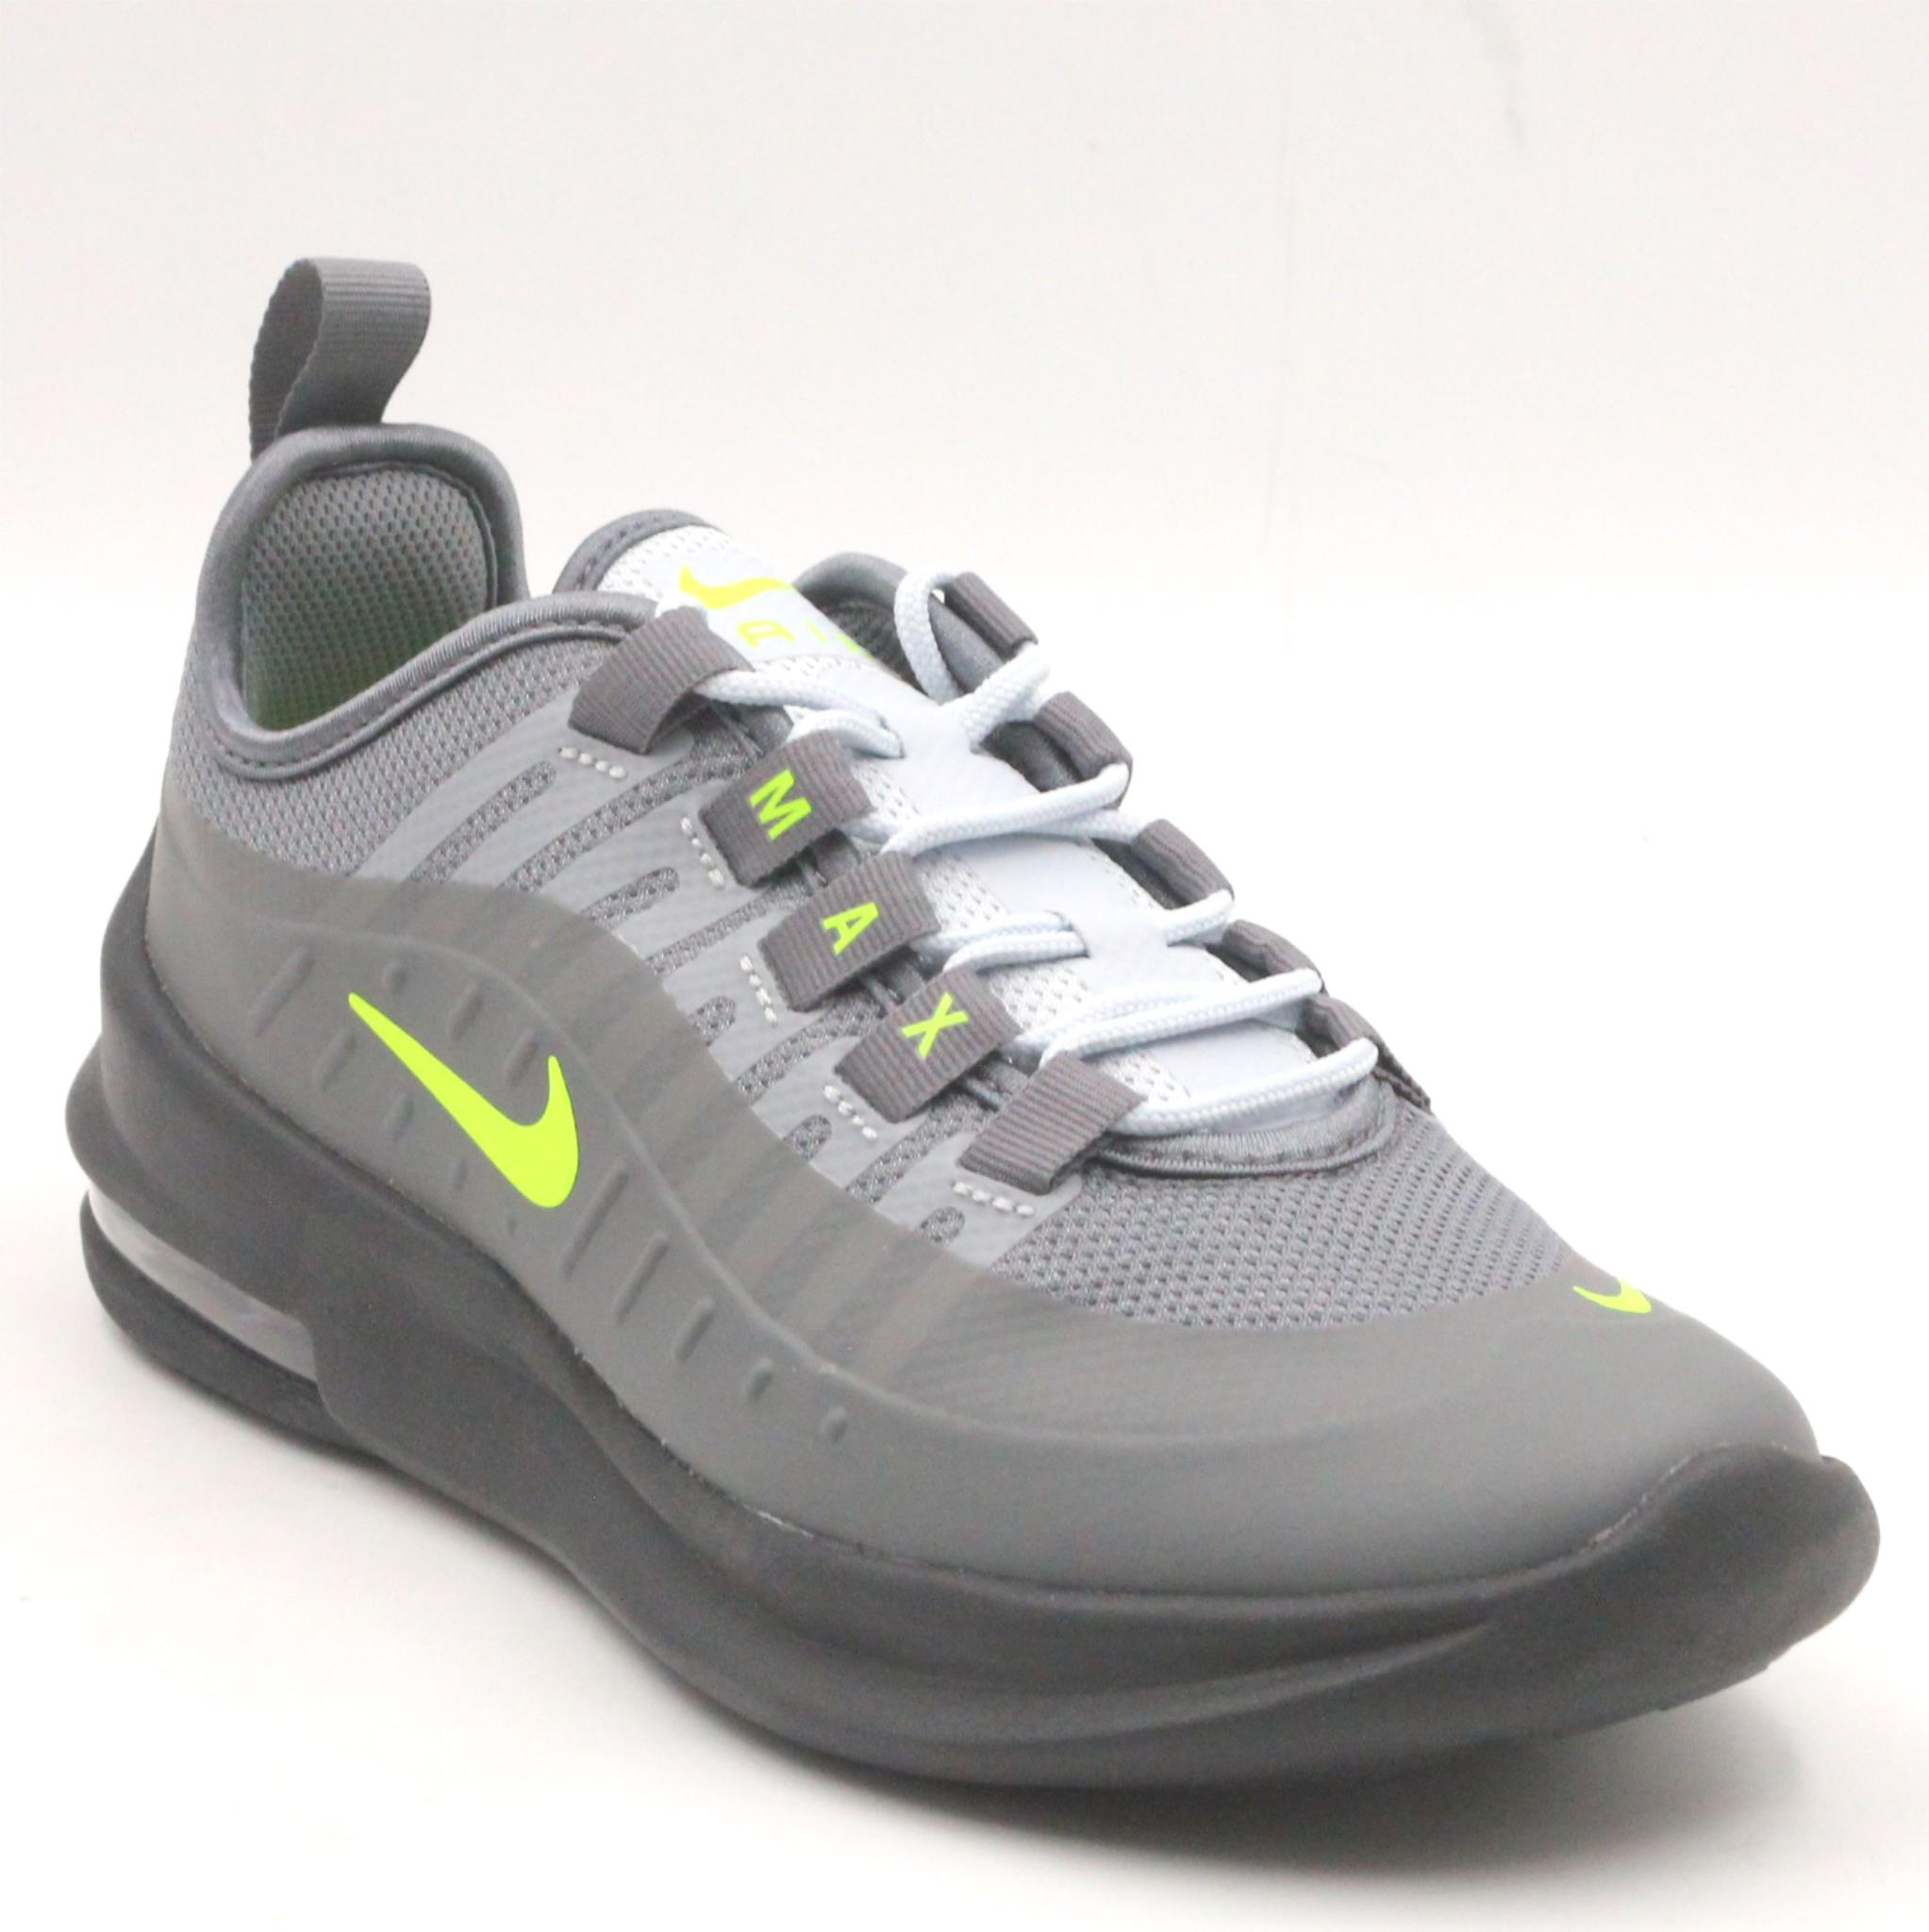 2087a91159b61 Details about Nike Air Max Axis GS BV1247001 Youth Running Shoes Size US 4Y  Grey